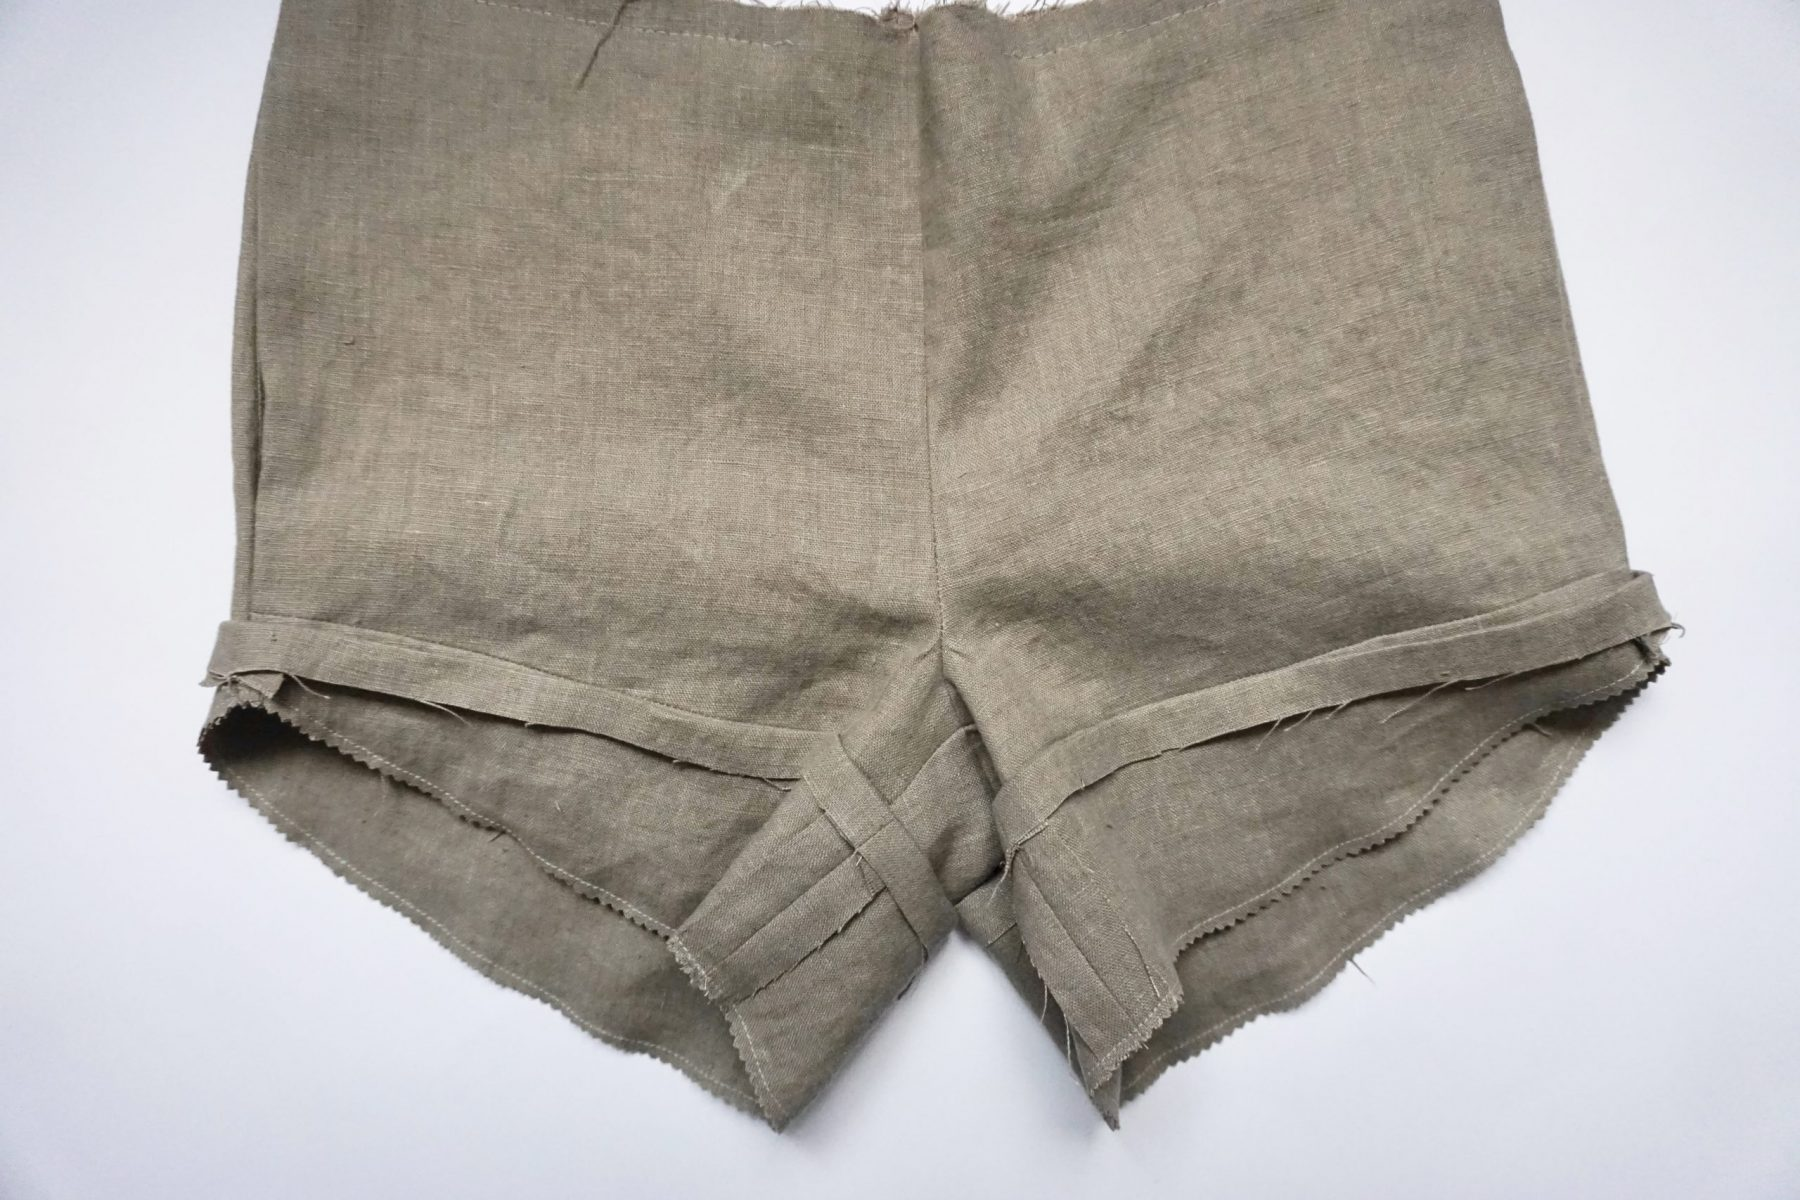 Clip into the corner along the seam line and notch along the hemline.